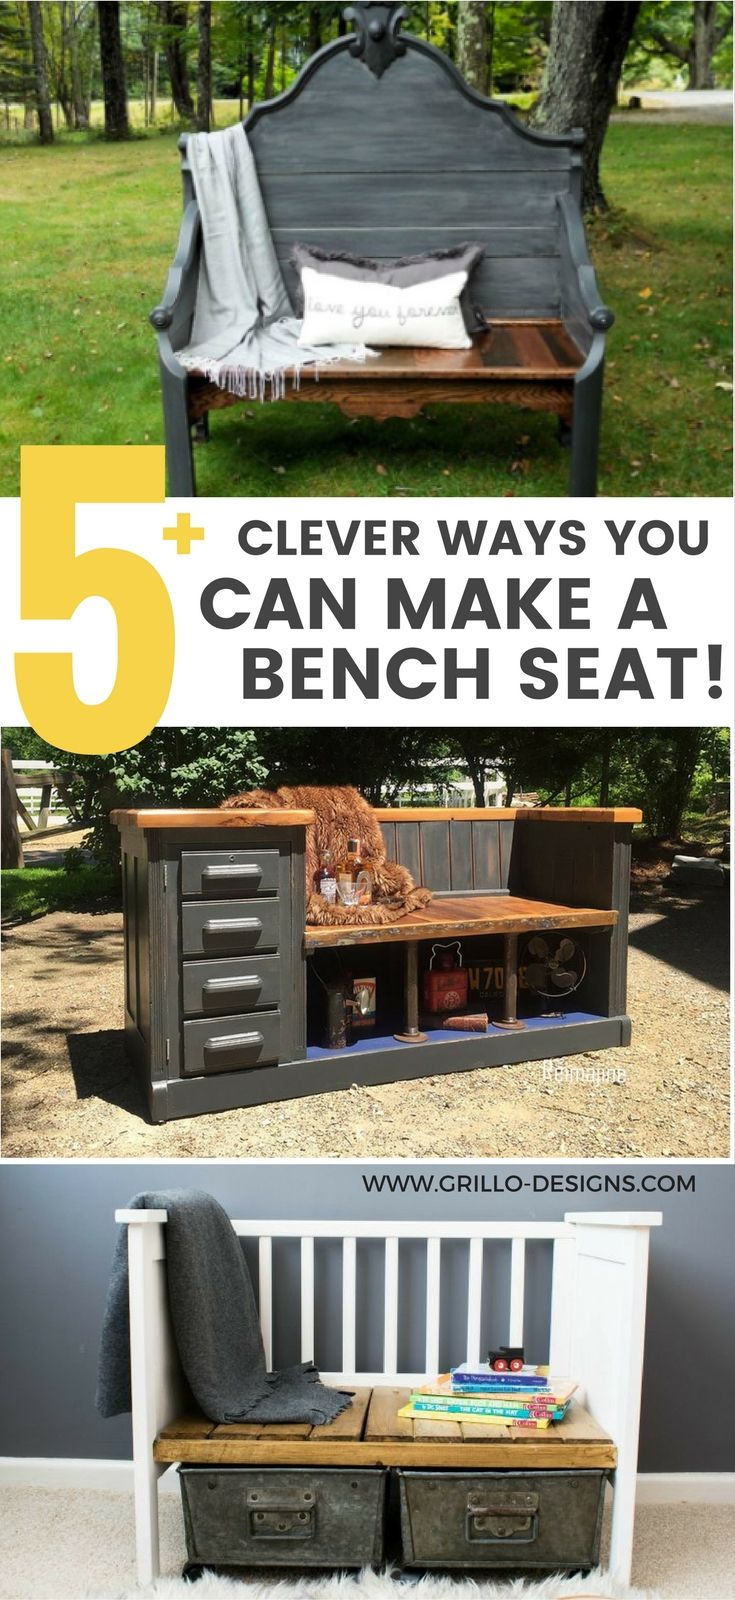 5 Upcycled Bench Ideas From Repurposed Furniture Pallet Ideas